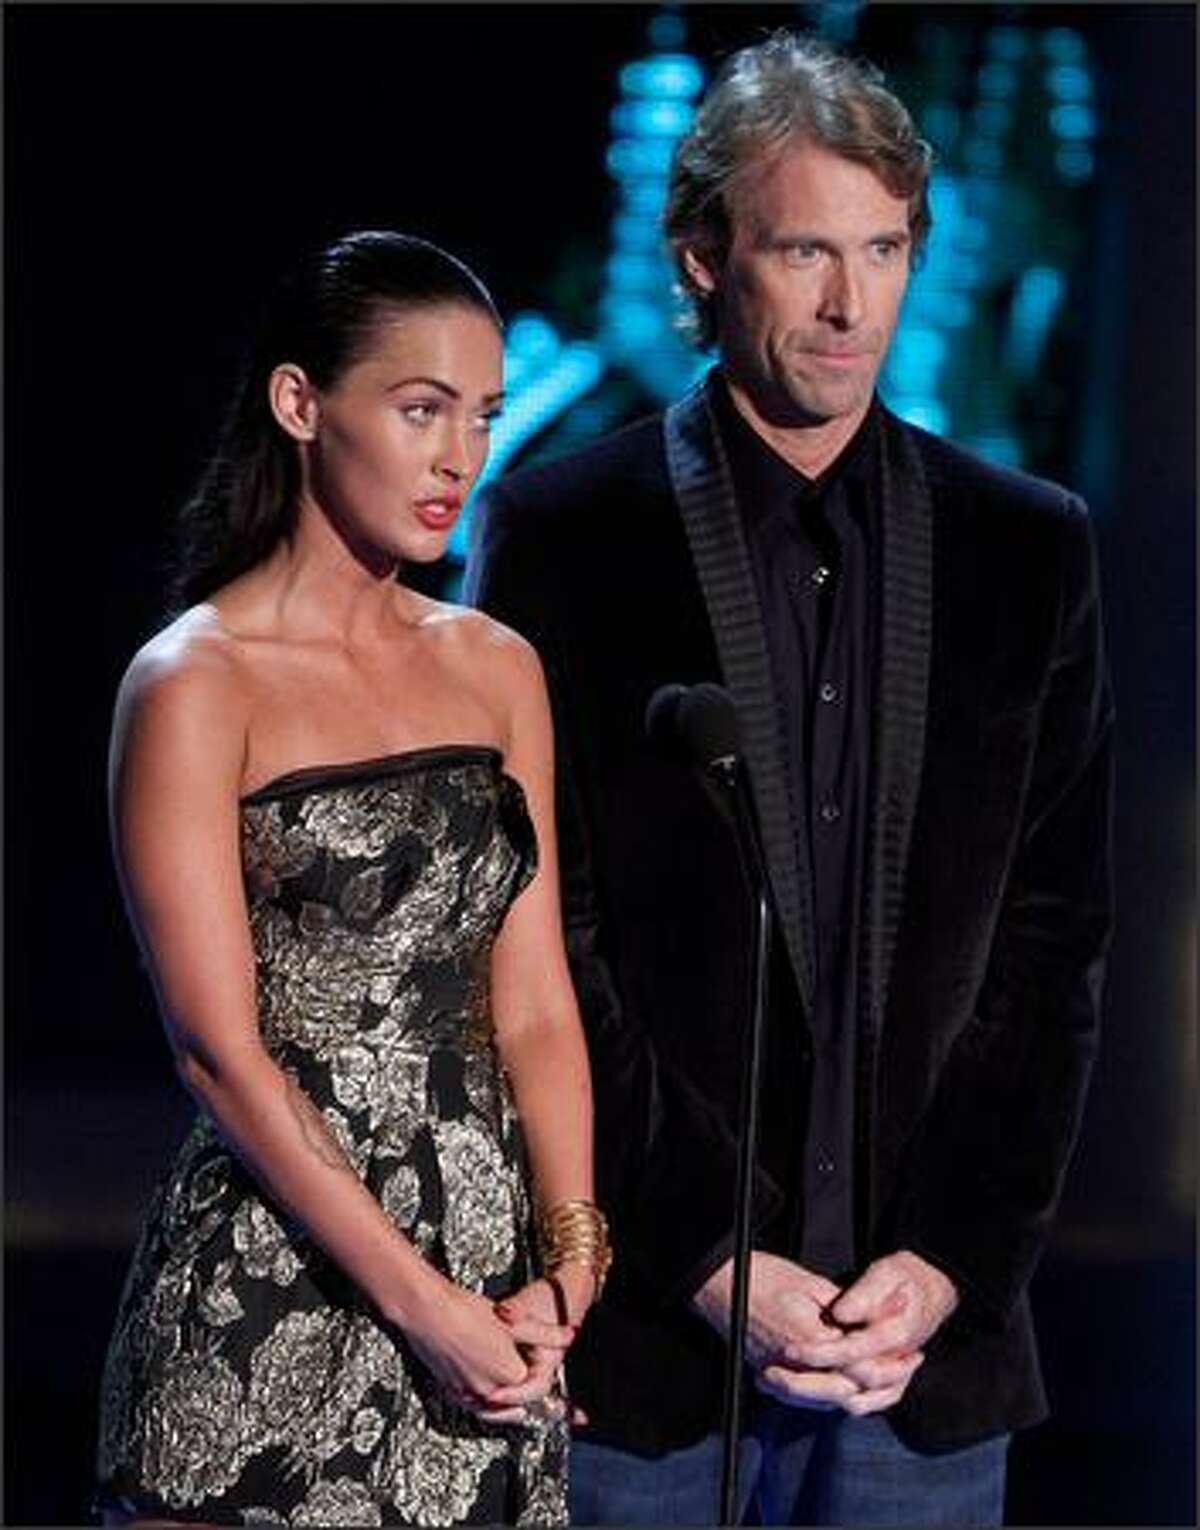 Actress Megan Fox, left, and director Michael Bay speak onstage during the 18th Annual MTV Movie Awards held at the Gibson Amphitheatre on Sunday in Universal City, Calif.